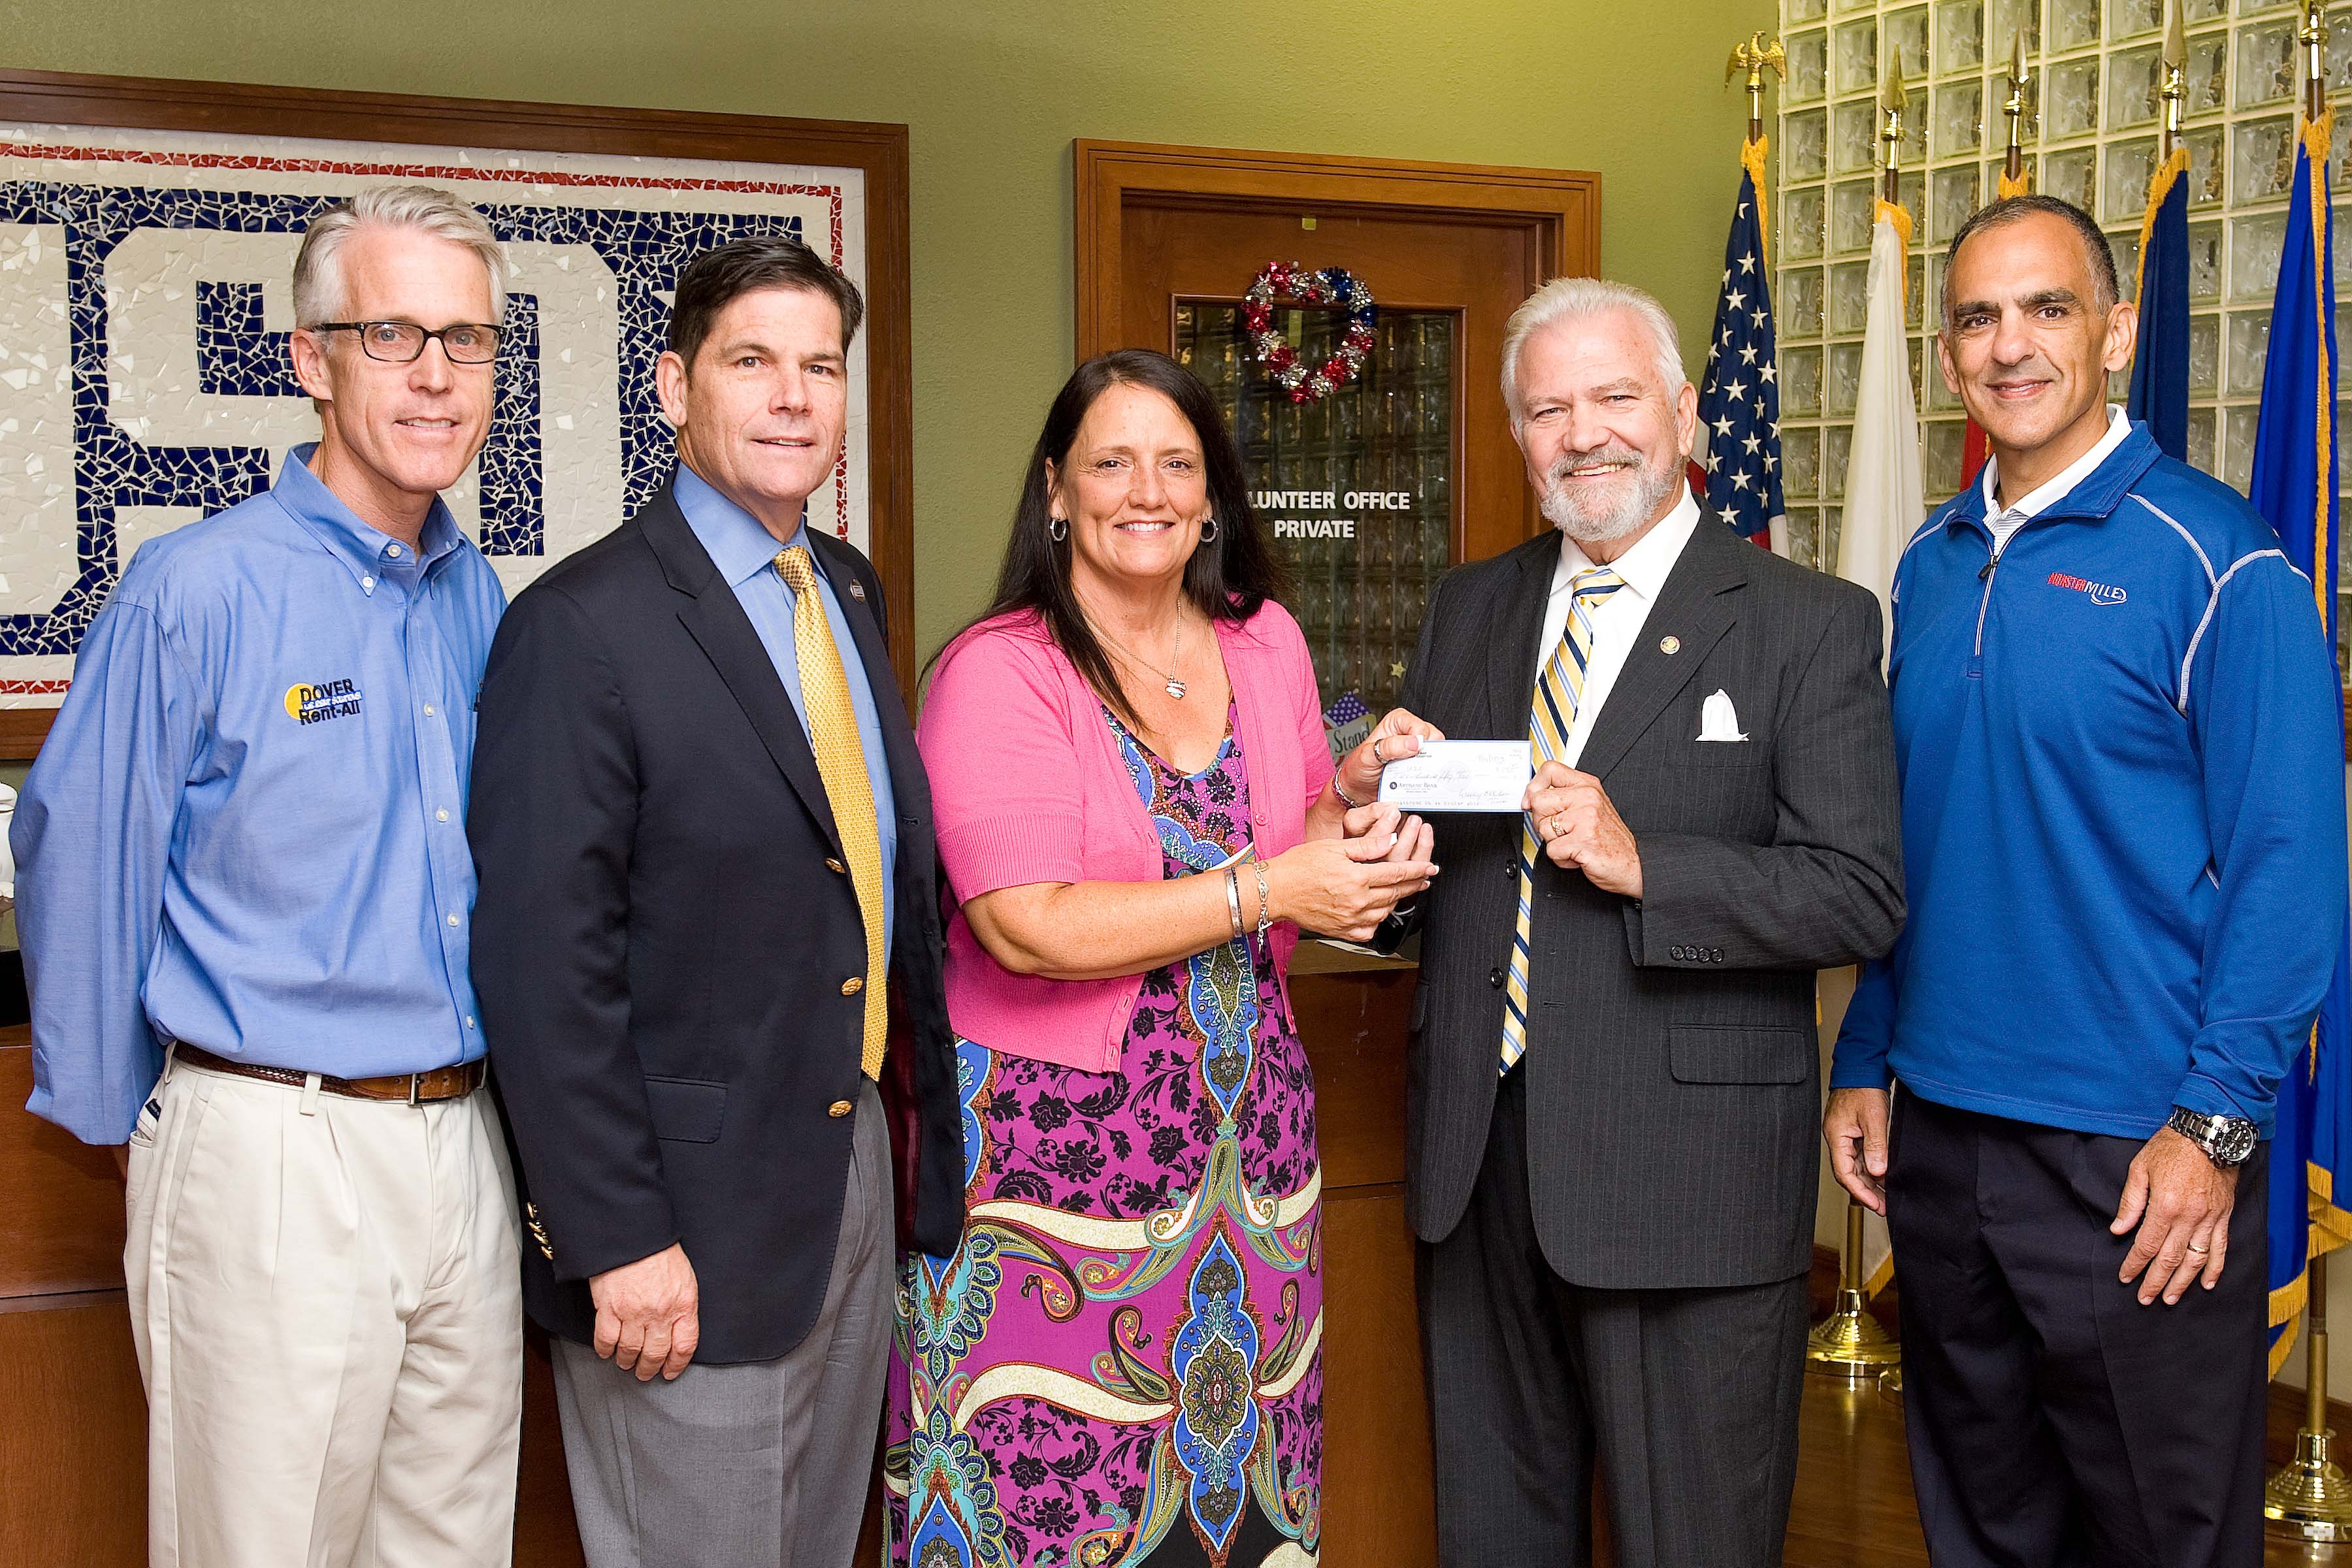 Dave Skocik, second from right, quartermaster of Veterans of Foreign Wars Memorial Post 9962, presents a check to USO Delaware Director Joan Cote on Sept. 19. Also pictured are outgoing USO Delaware board members Dave Clapp, left, and C. Scott Kidner, second left, and USO Delaware Chairman Mike Tatoian, far right. Air Force photo by Roland Balik